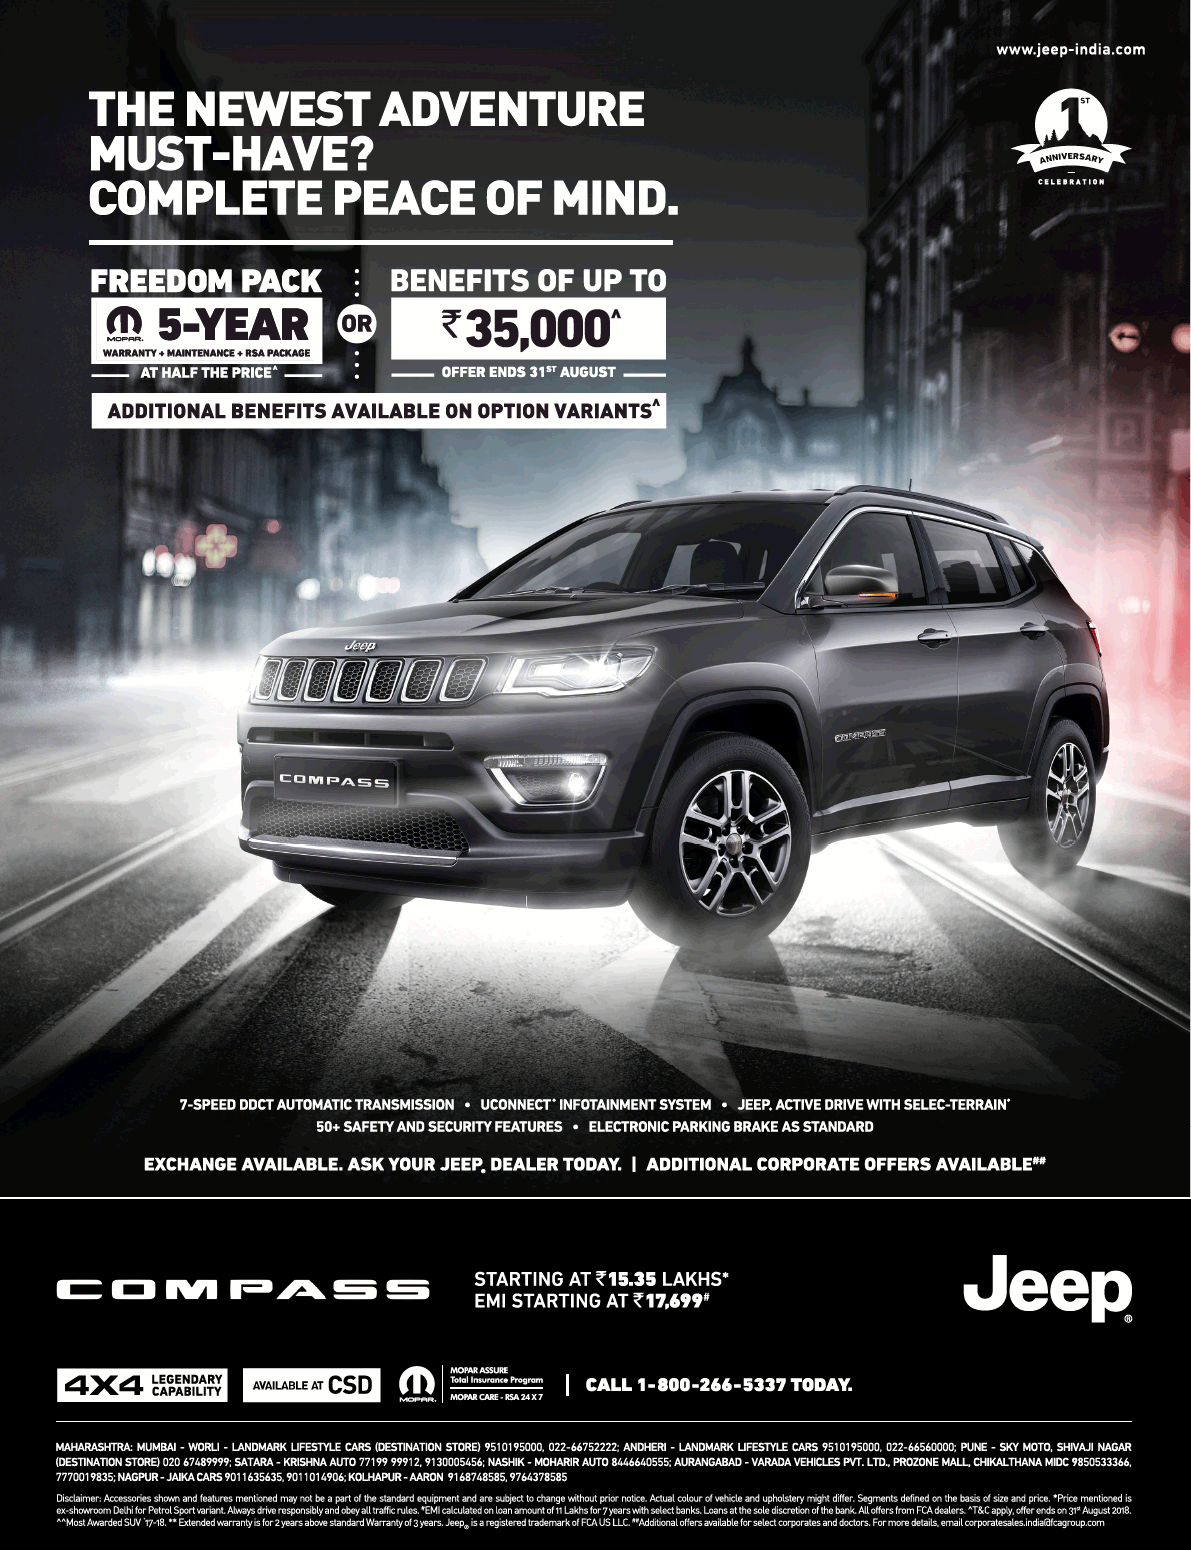 Jeep Compass The Newest Adventure Ad Mirror Mumbai Check Out More